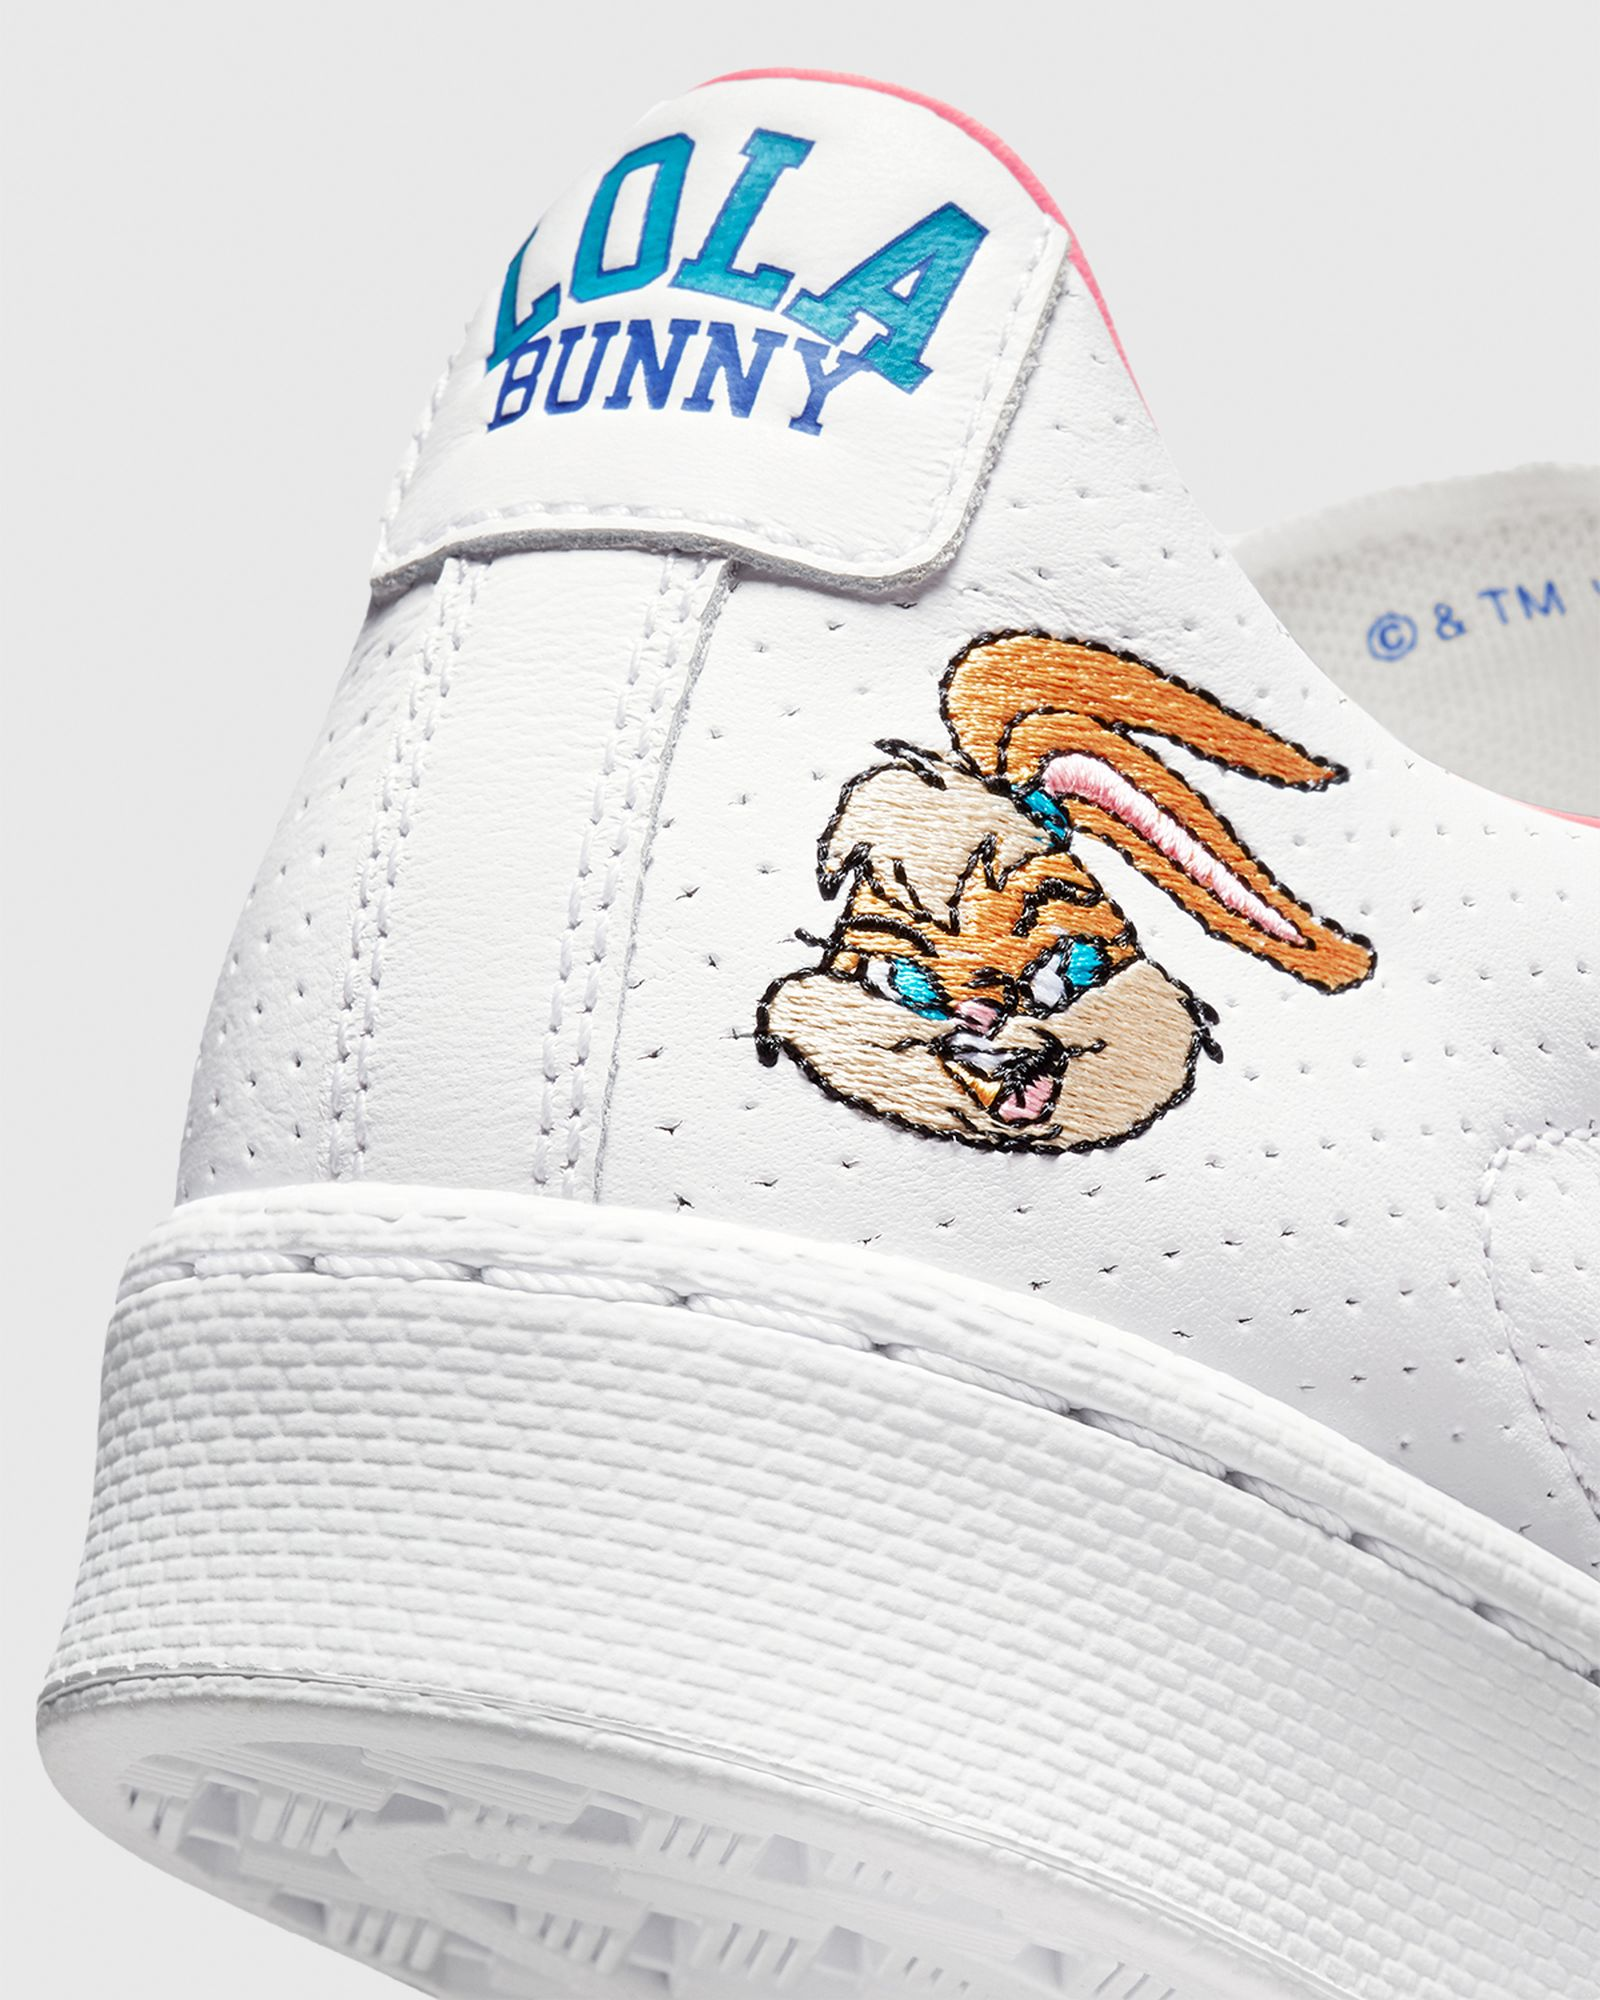 converse-space-jam-2-pack-release-date-price-lola-bunny-09